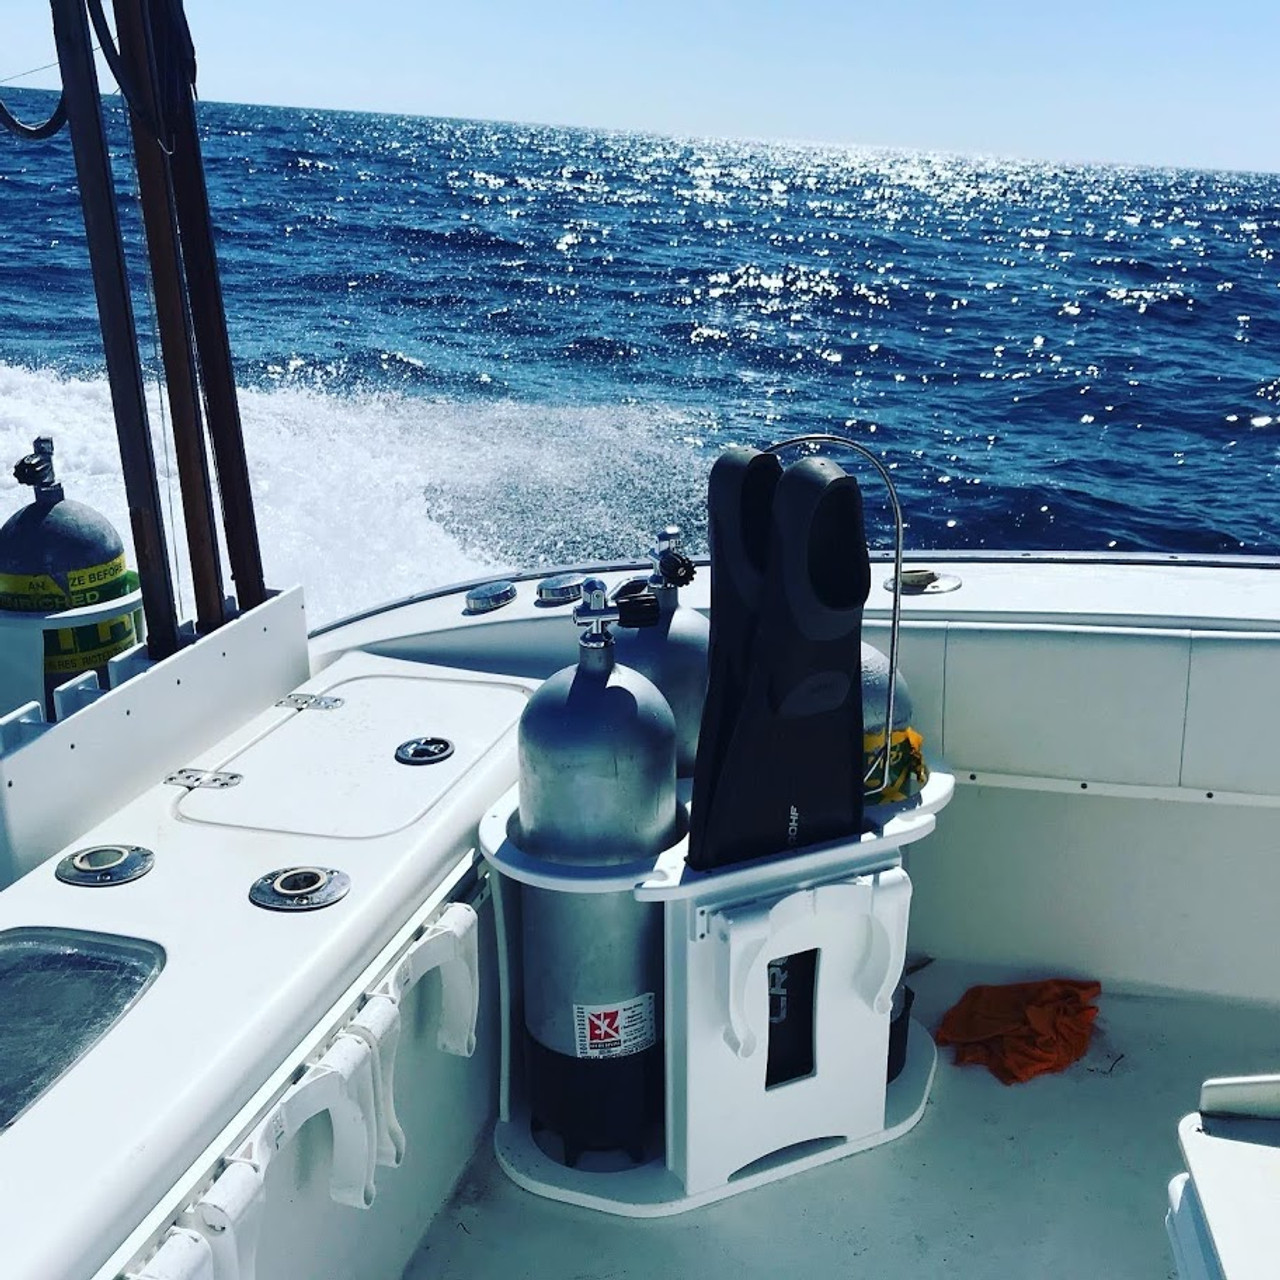 Let Mangrove Marine organize your boat to keep all your scuba diving gear, tanks fins and other items secured and not rolling around in the boat.  The 3 tank rack for the corner of the boat is a great accessory when your dive buddy doesn't have extra space for your tanks and gear.   Makes a great gift for your favorite scuba diver.   Tanks and fins not included.